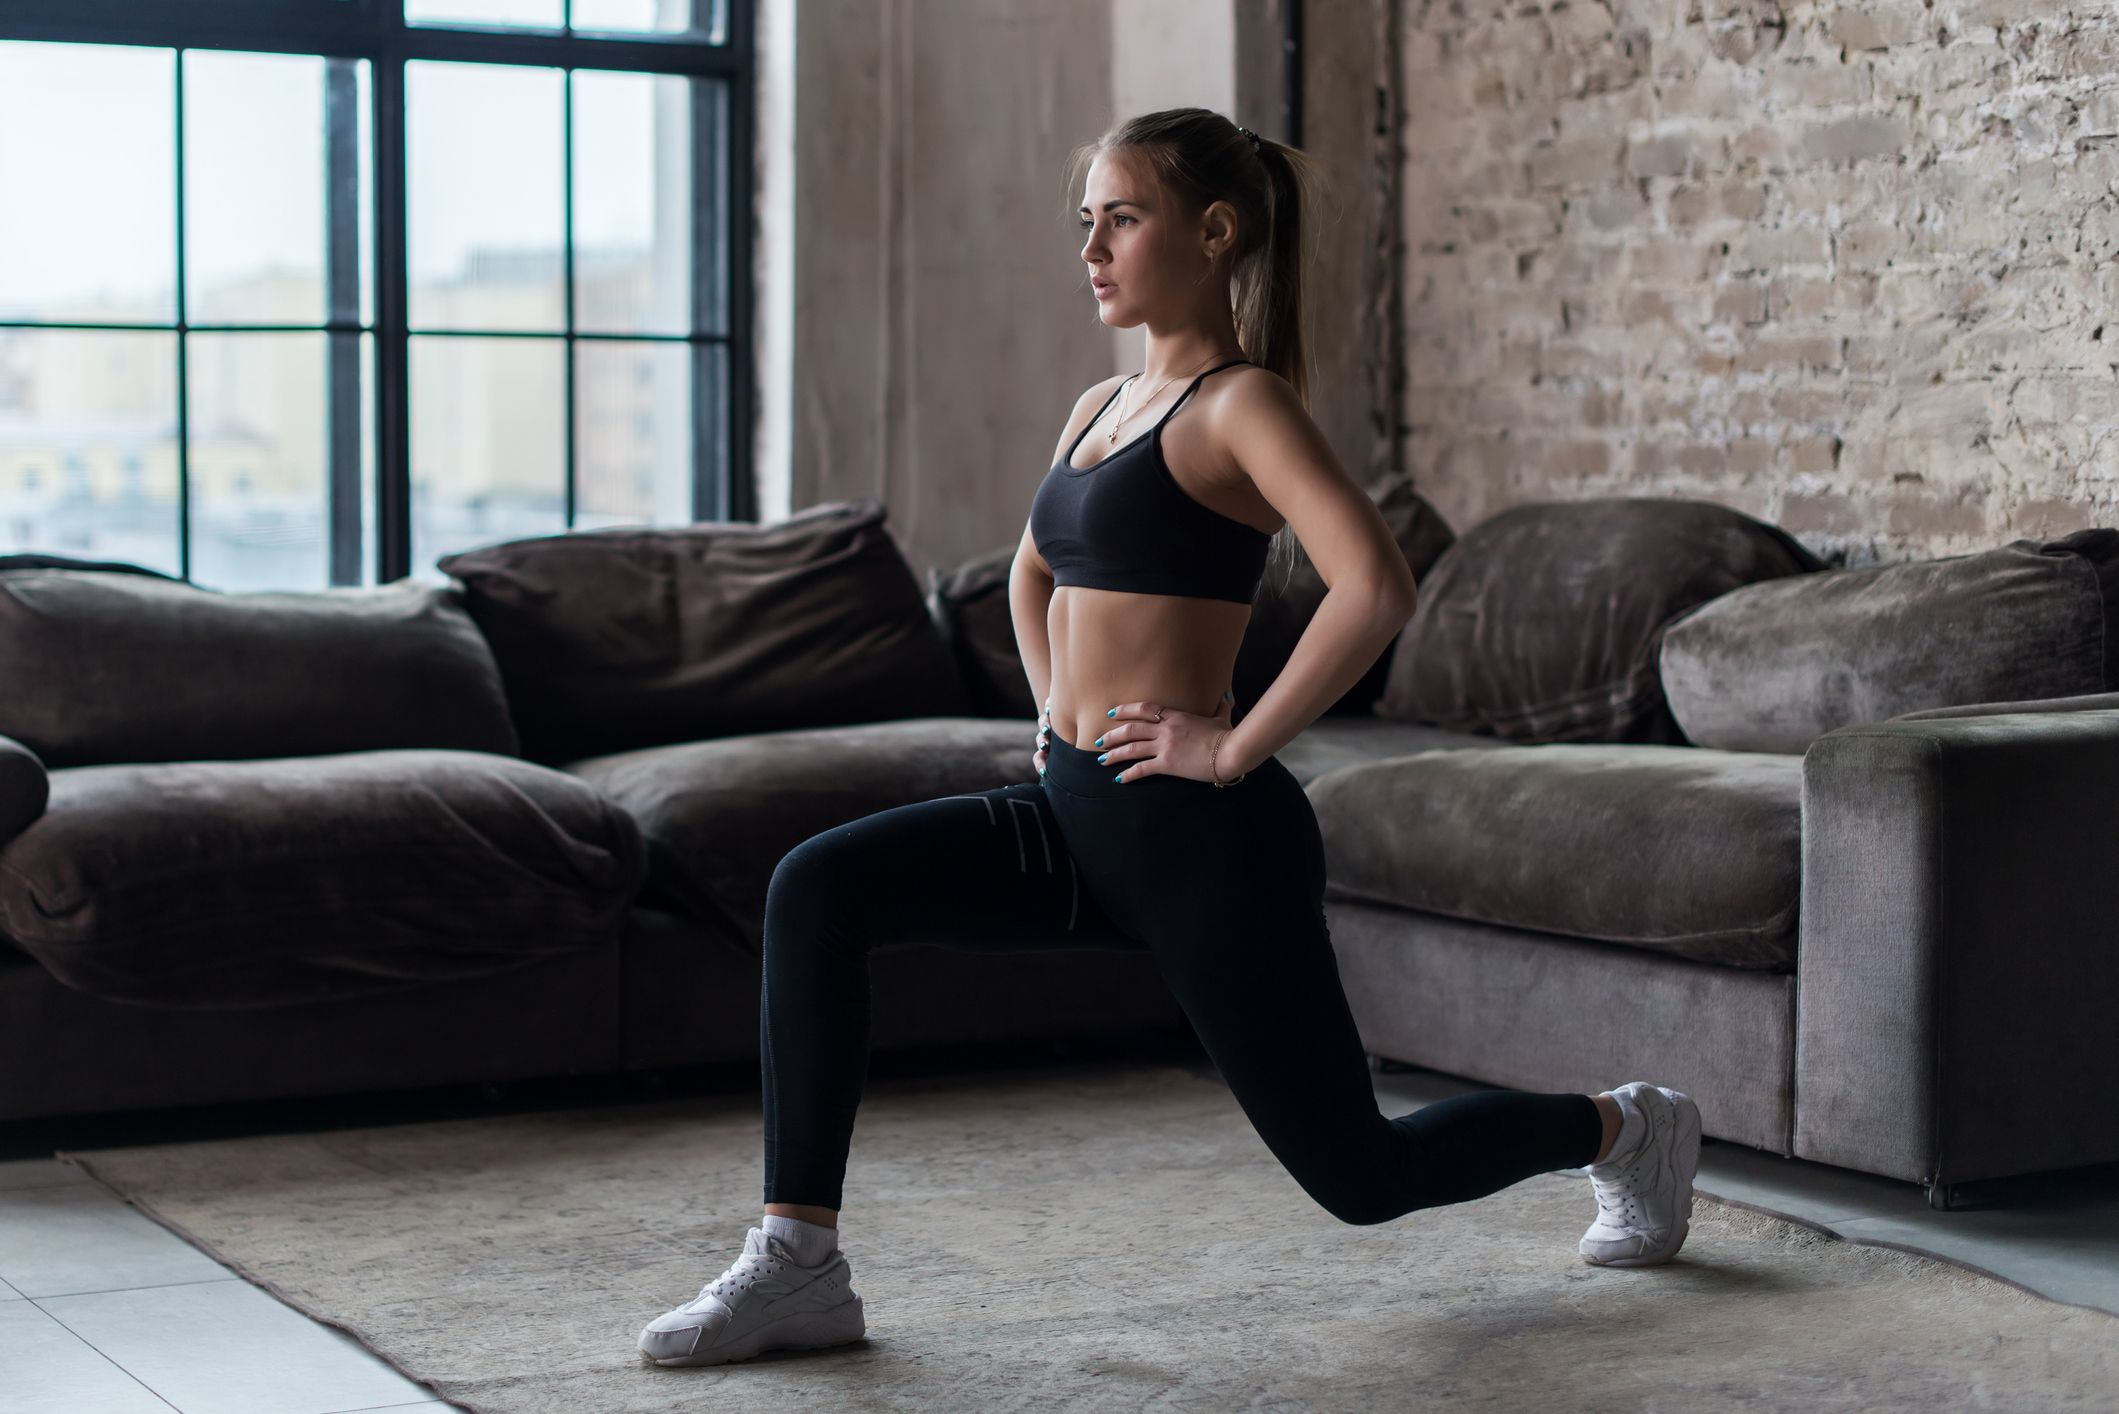 This is the most effective piece of at-home exercise kit you can buy